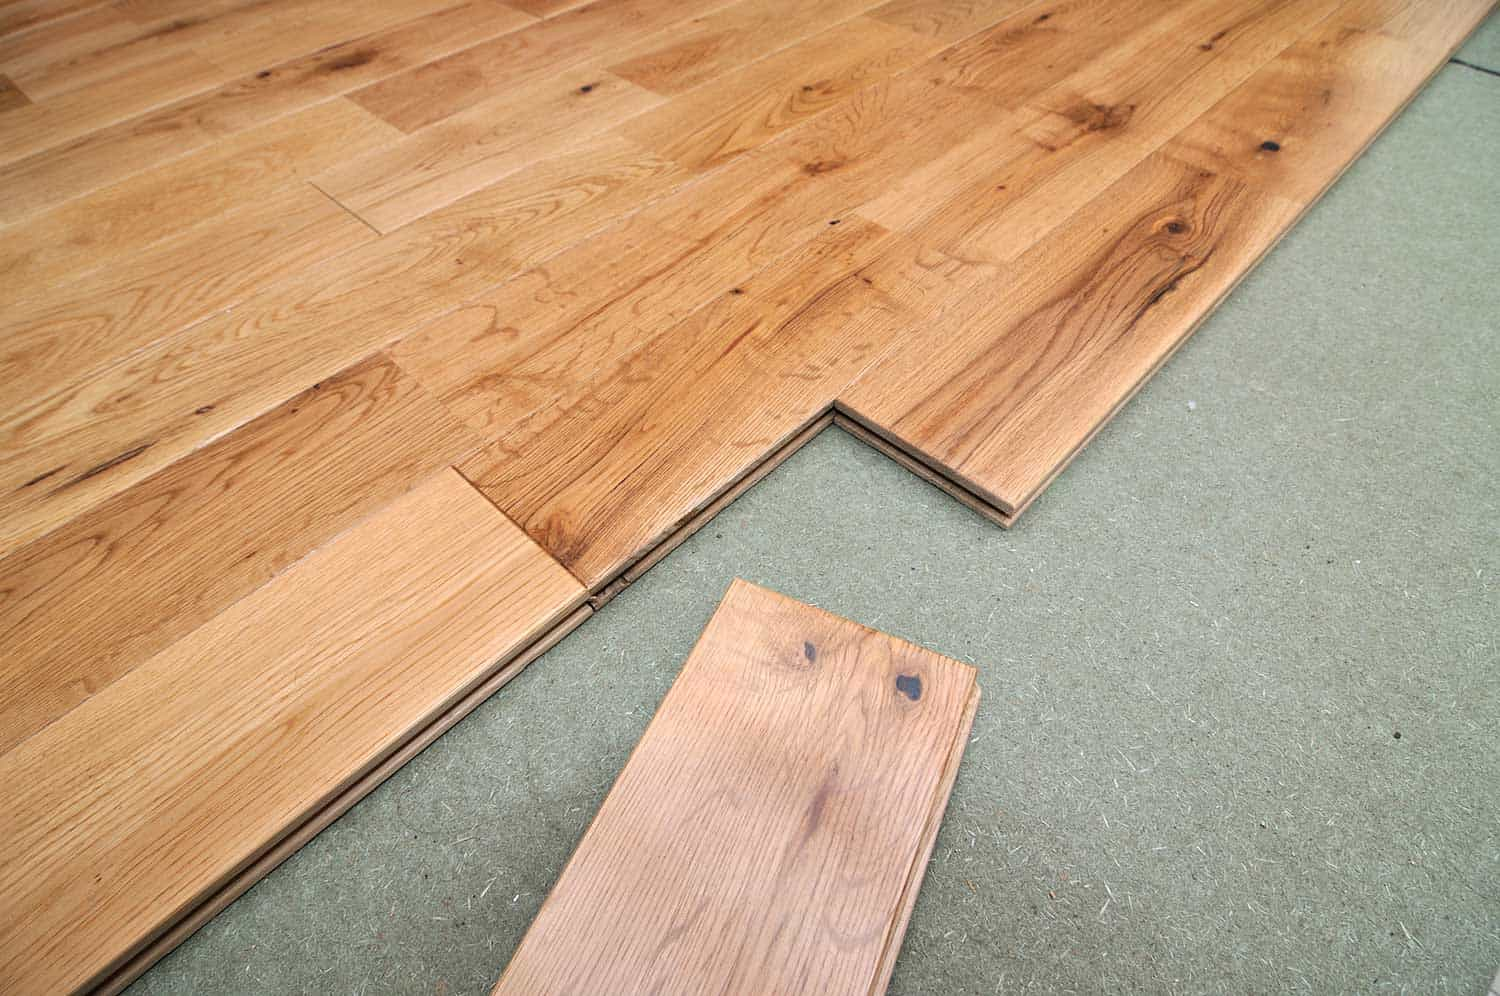 Partially laid oak floorboards, showing the insulation underneath